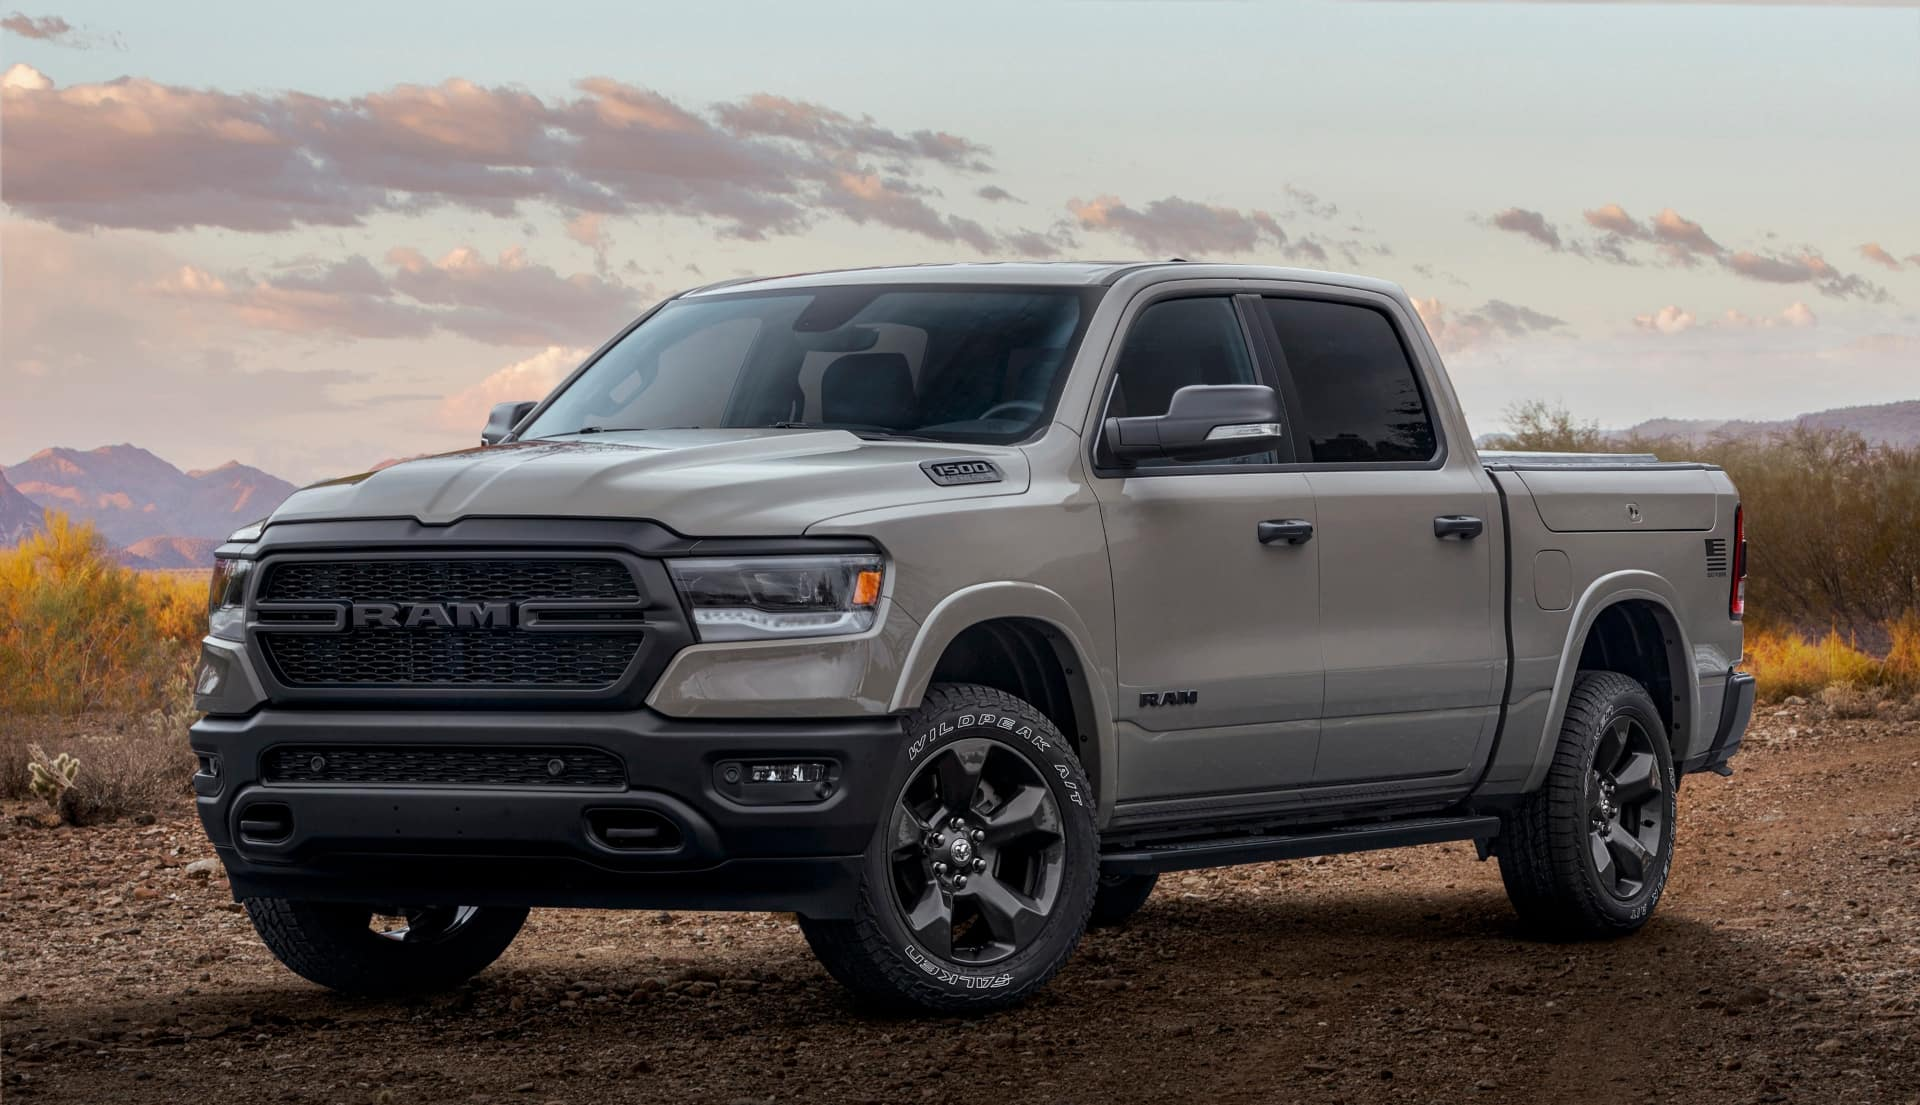 Possible Upgrades Coming To The 2021 Ram 1500